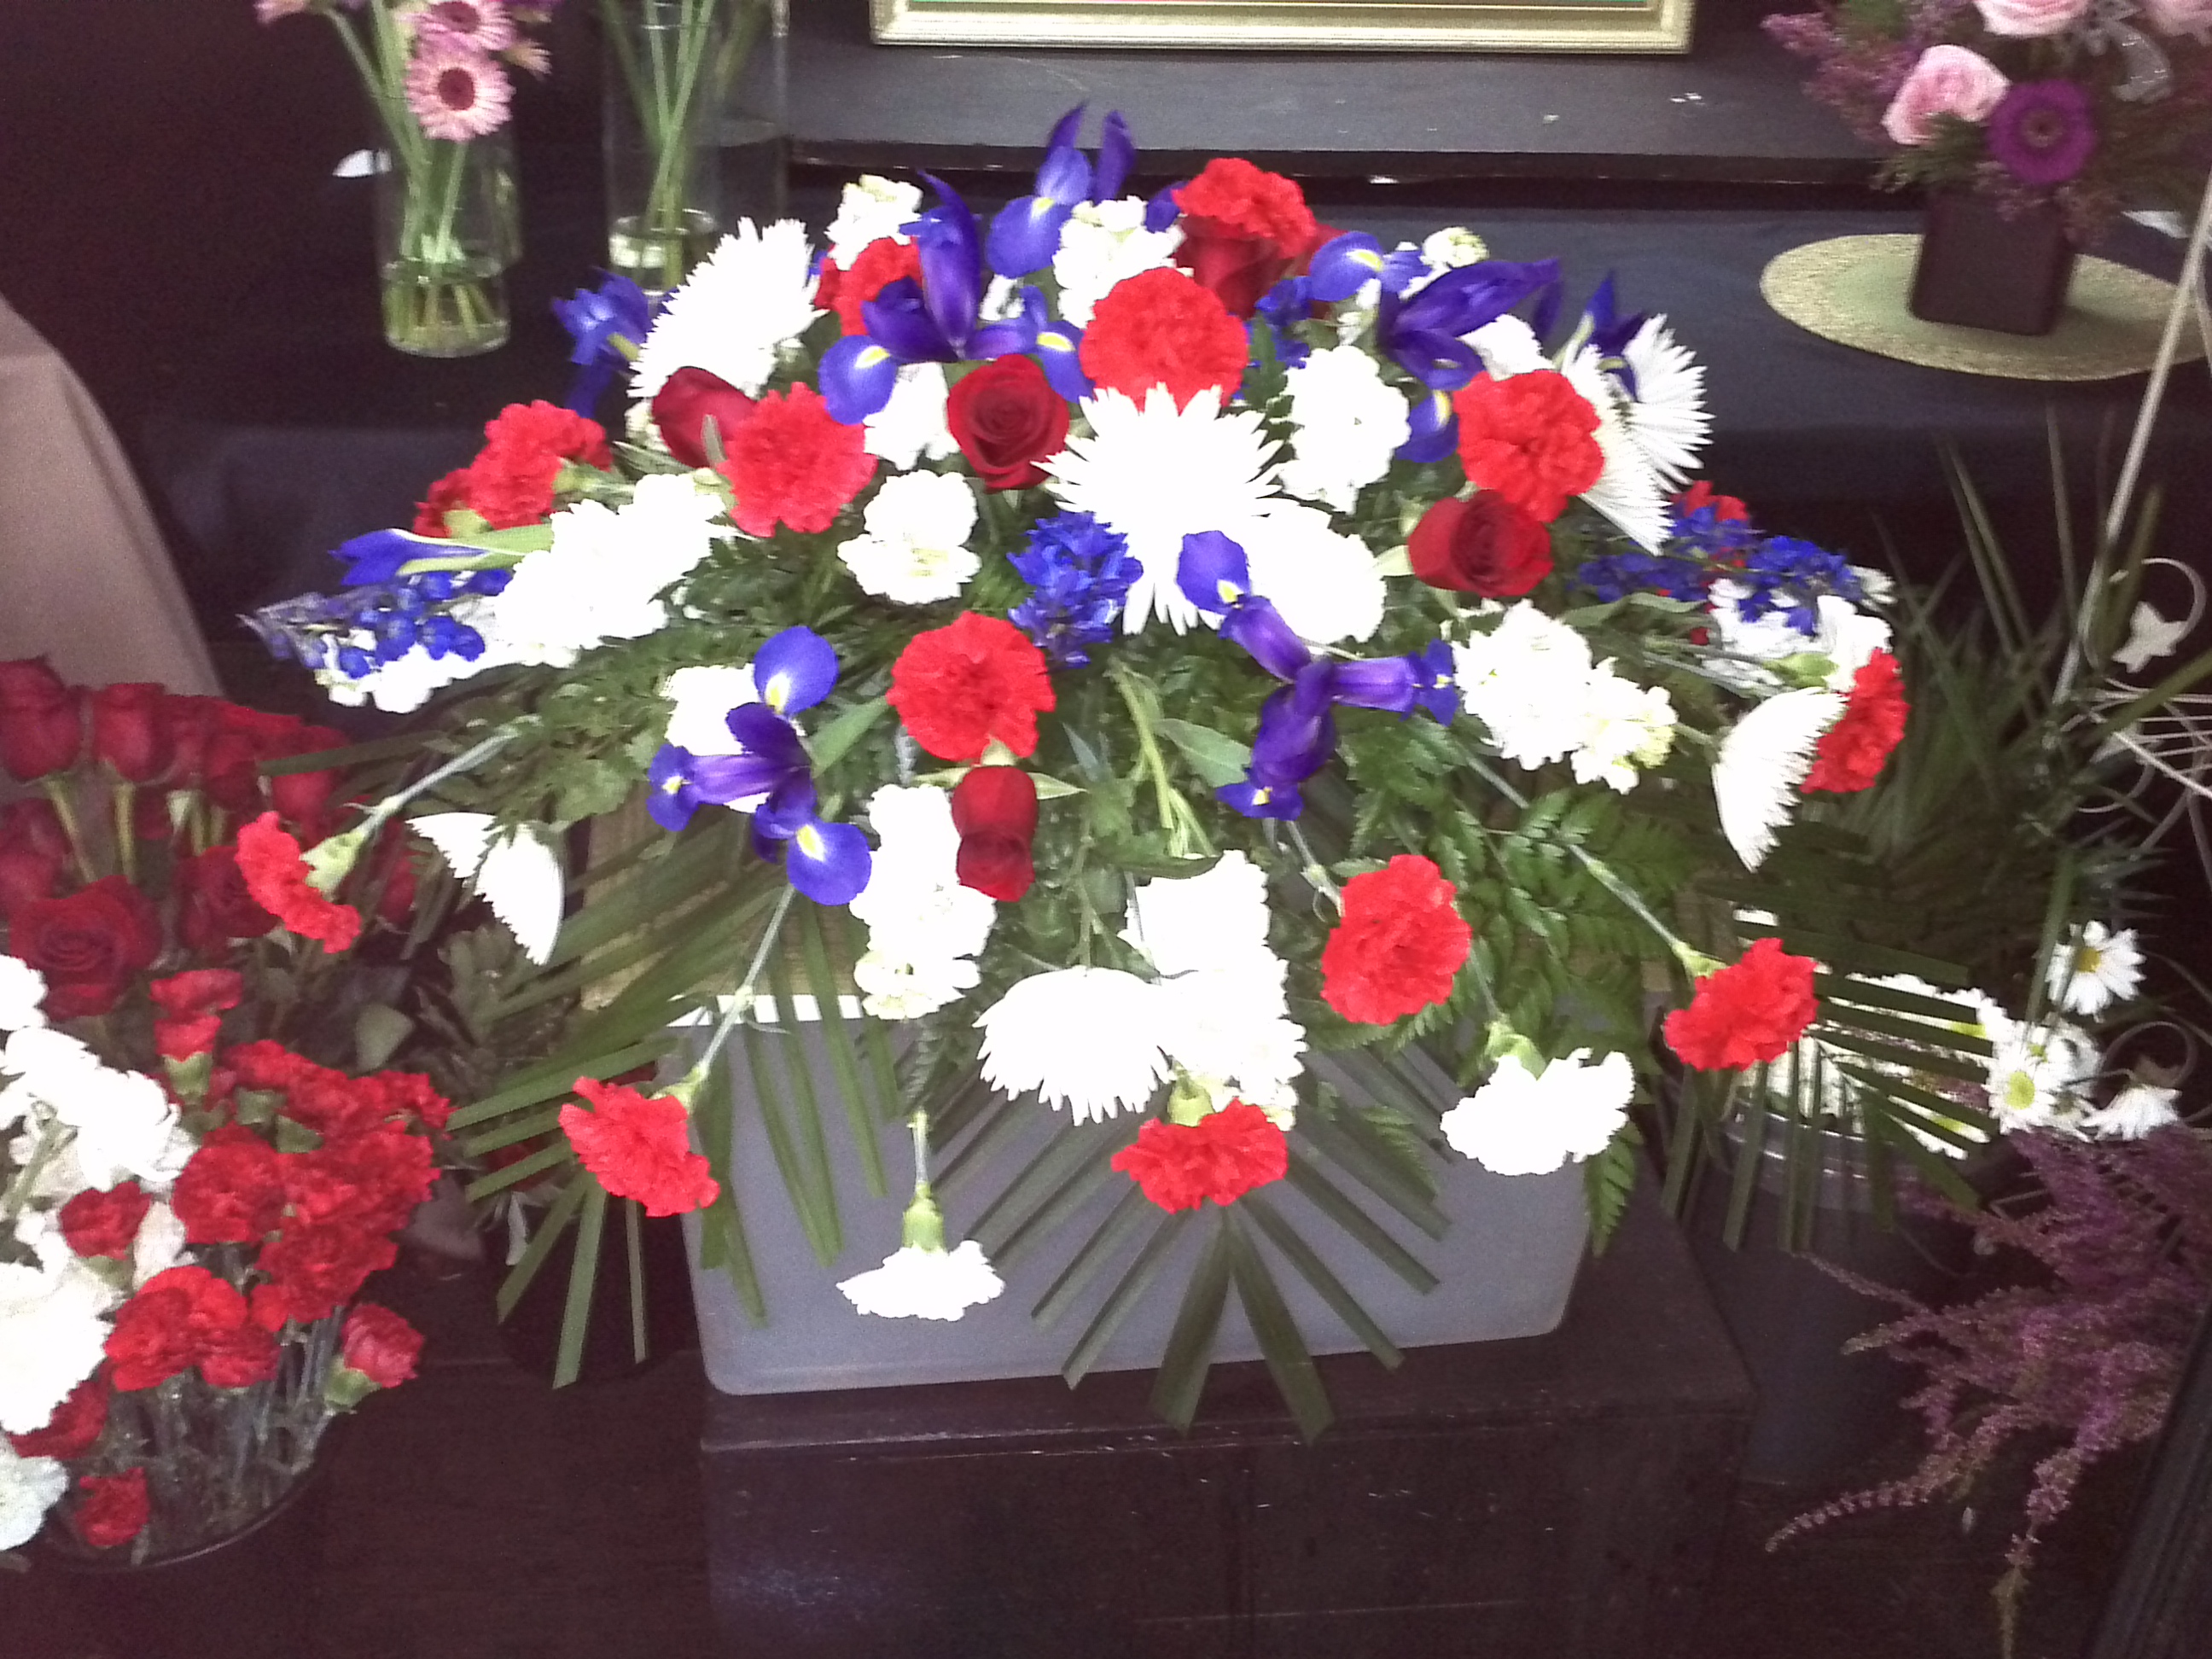 Funeral flowers sympathy flowers send flowers for funeral casket adornment red white blue funeral flowers izmirmasajfo